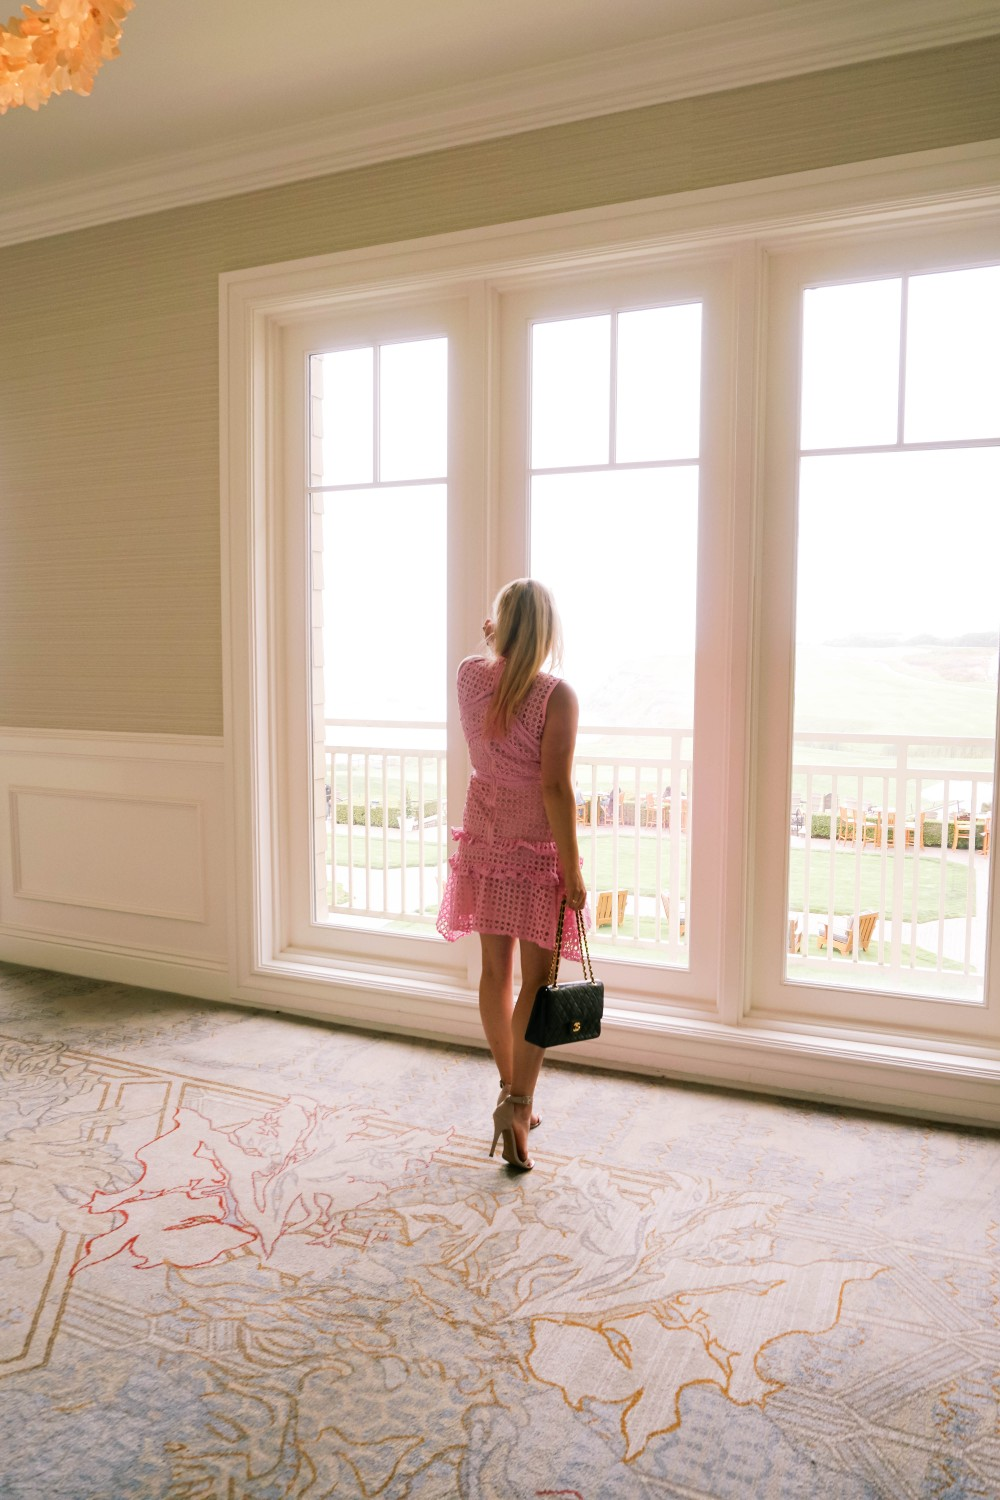 Pink Lace Dress-Borrowed by Design-Chanel Handbag-Self Portrait Pink Lace Dress Lookalike 3